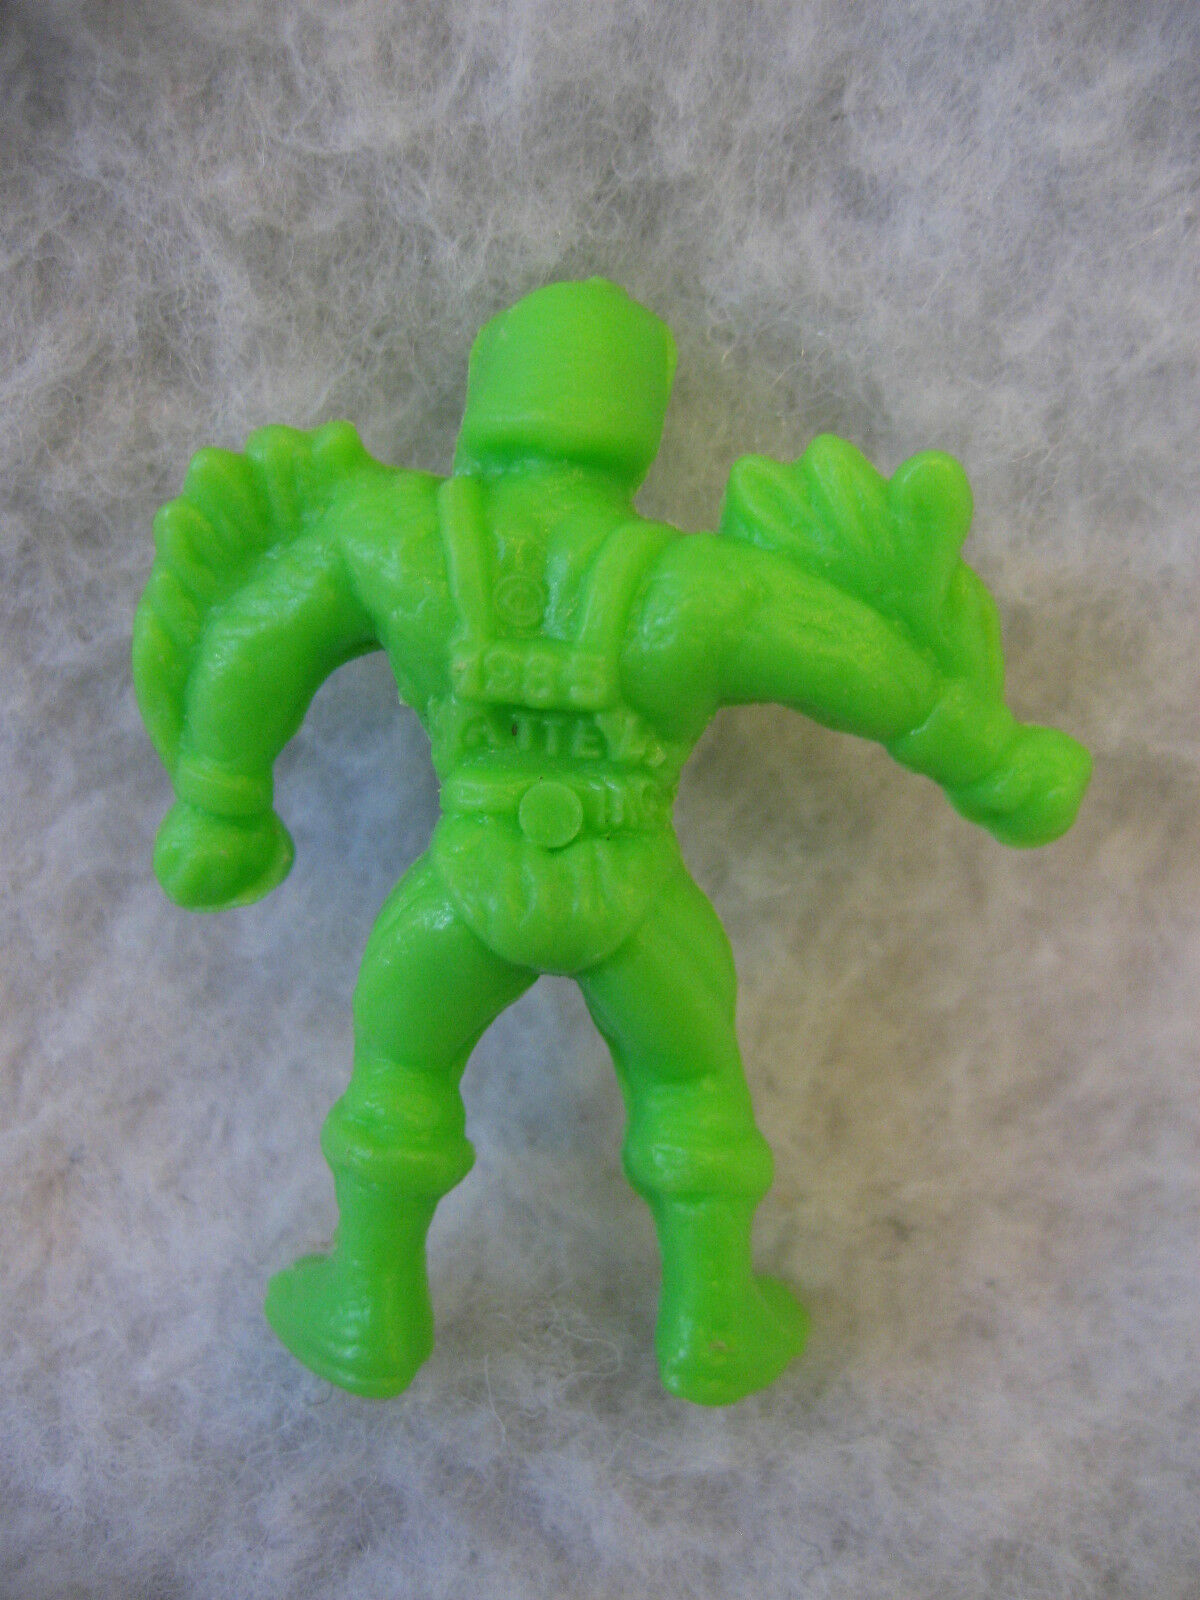 1985 vintage STRATOS Panrico Dunkin MASTERS OF THE THE THE UNIVERSE figure RARE toy item b51982